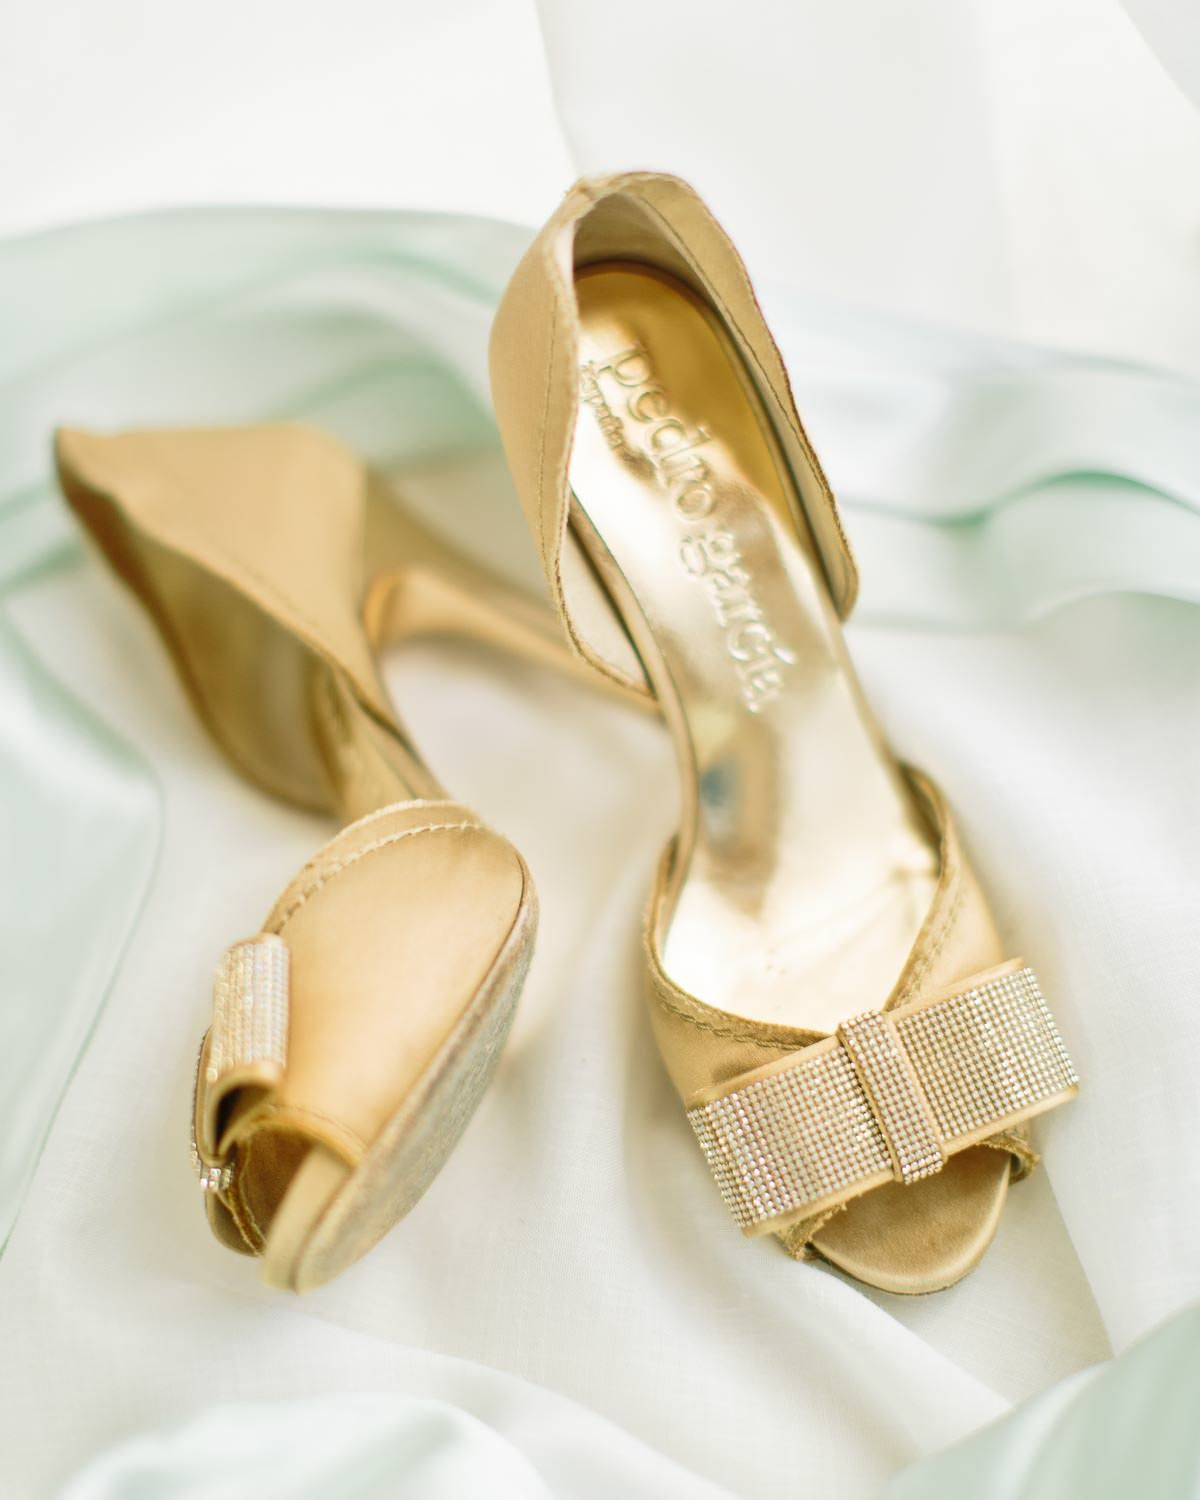 711361ddcc0693 The Top Designers of Wedding Shoes (with photos)